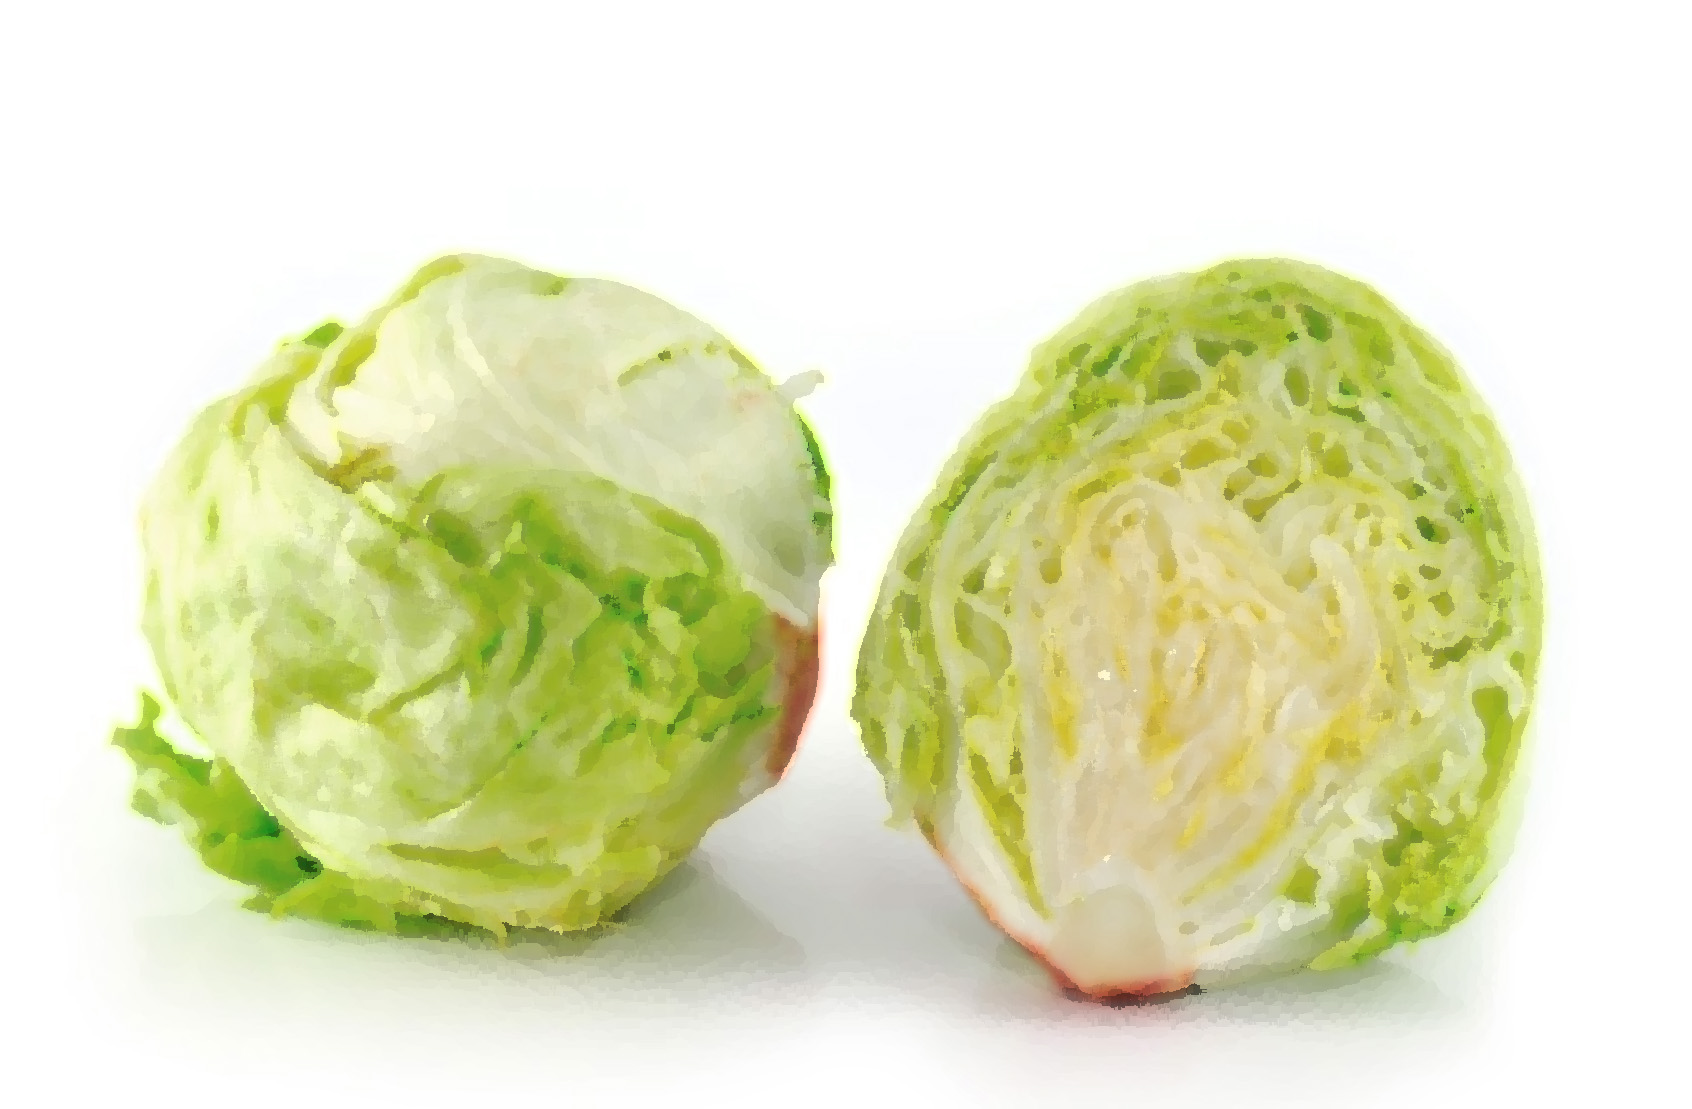 Just The Tip Of The Iceberg: A Few Facts On The Shortage of Kosher Iceberg Lettuce